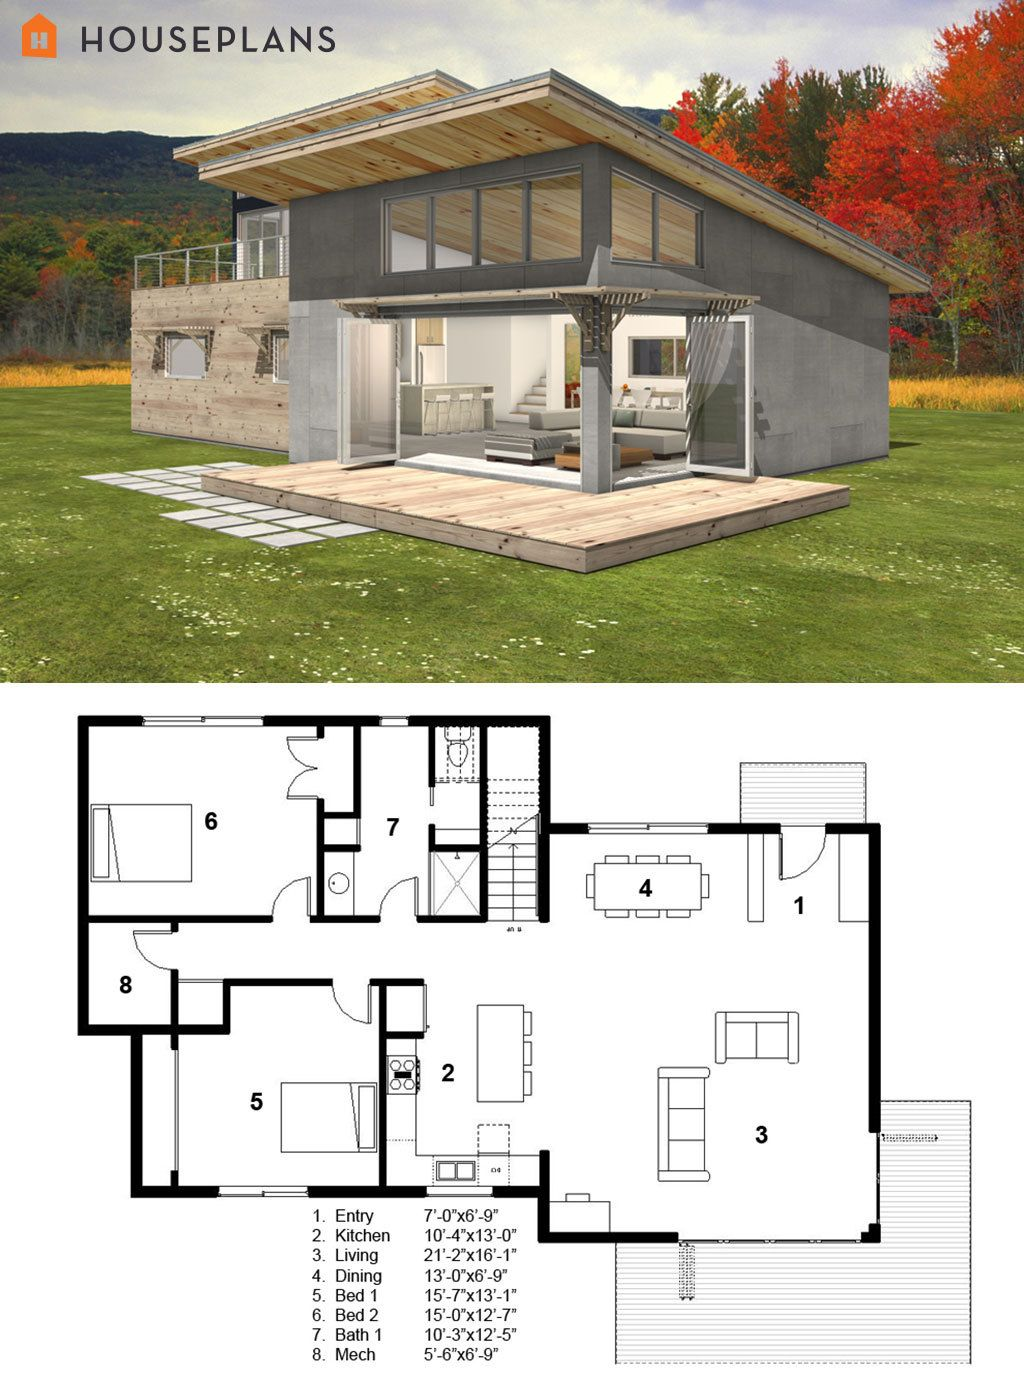 Modern style house plan 3 beds baths 2115 sq ft for Nice modern house plans